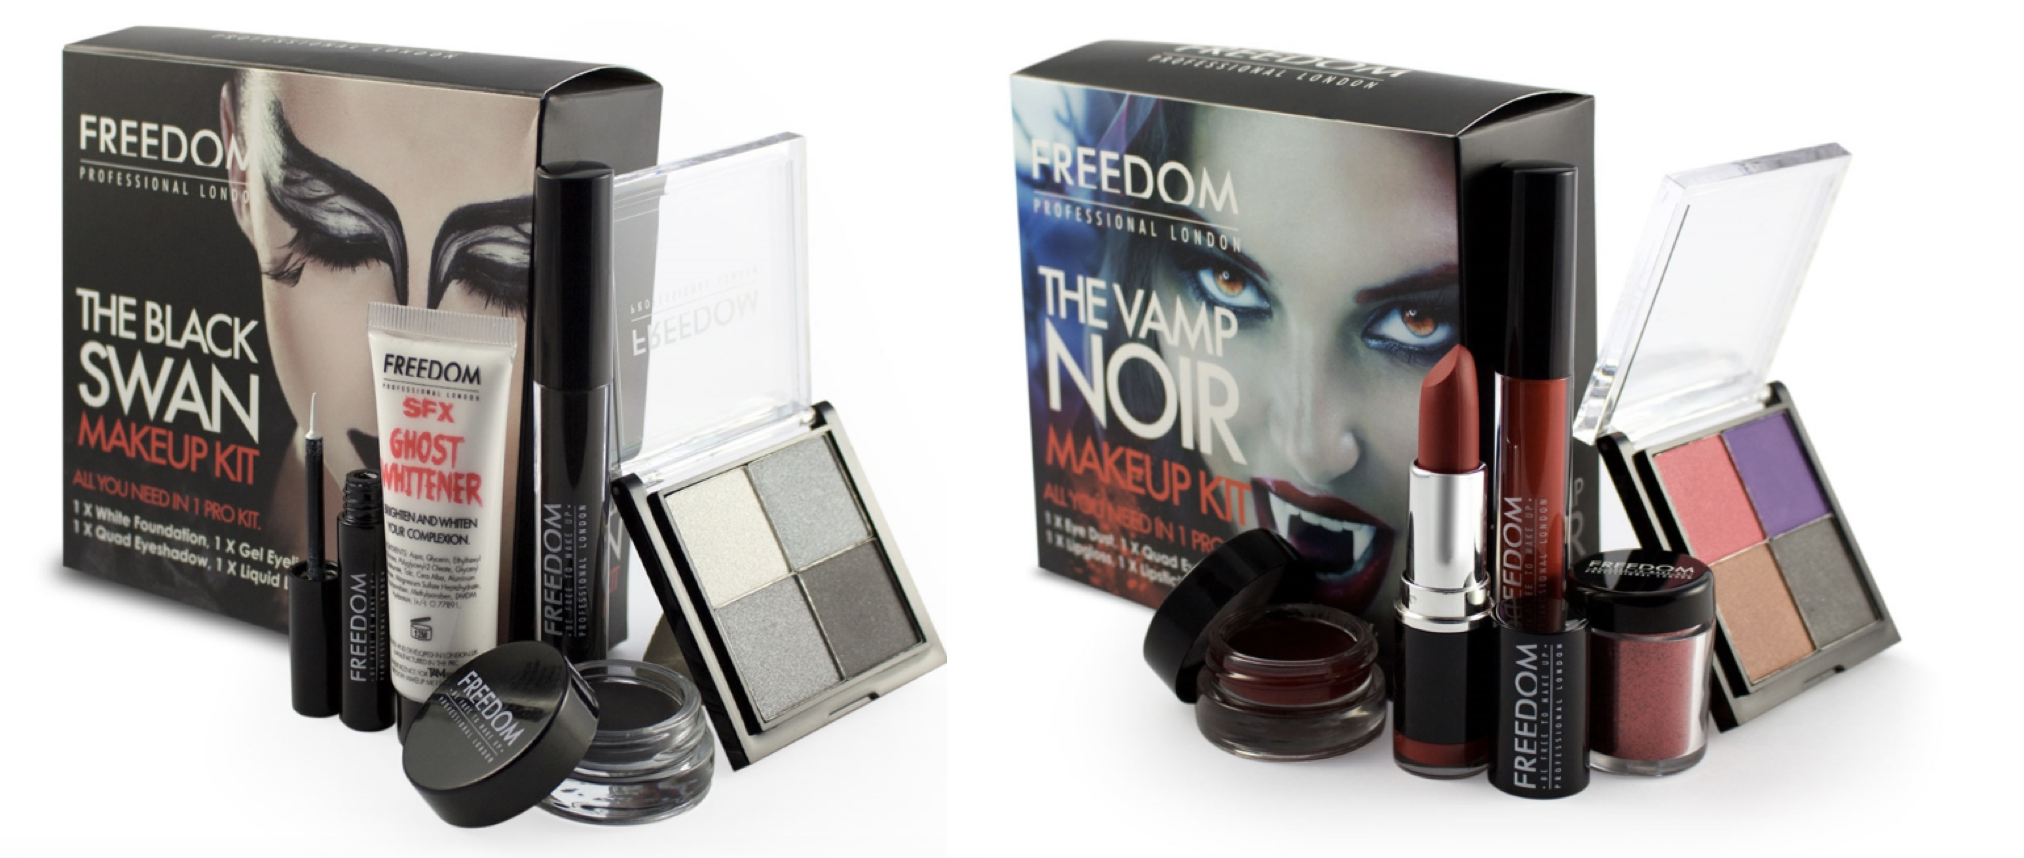 HALLOWEEN KITS BY FREEDOM MAKEUP | Beauty And The Dirt